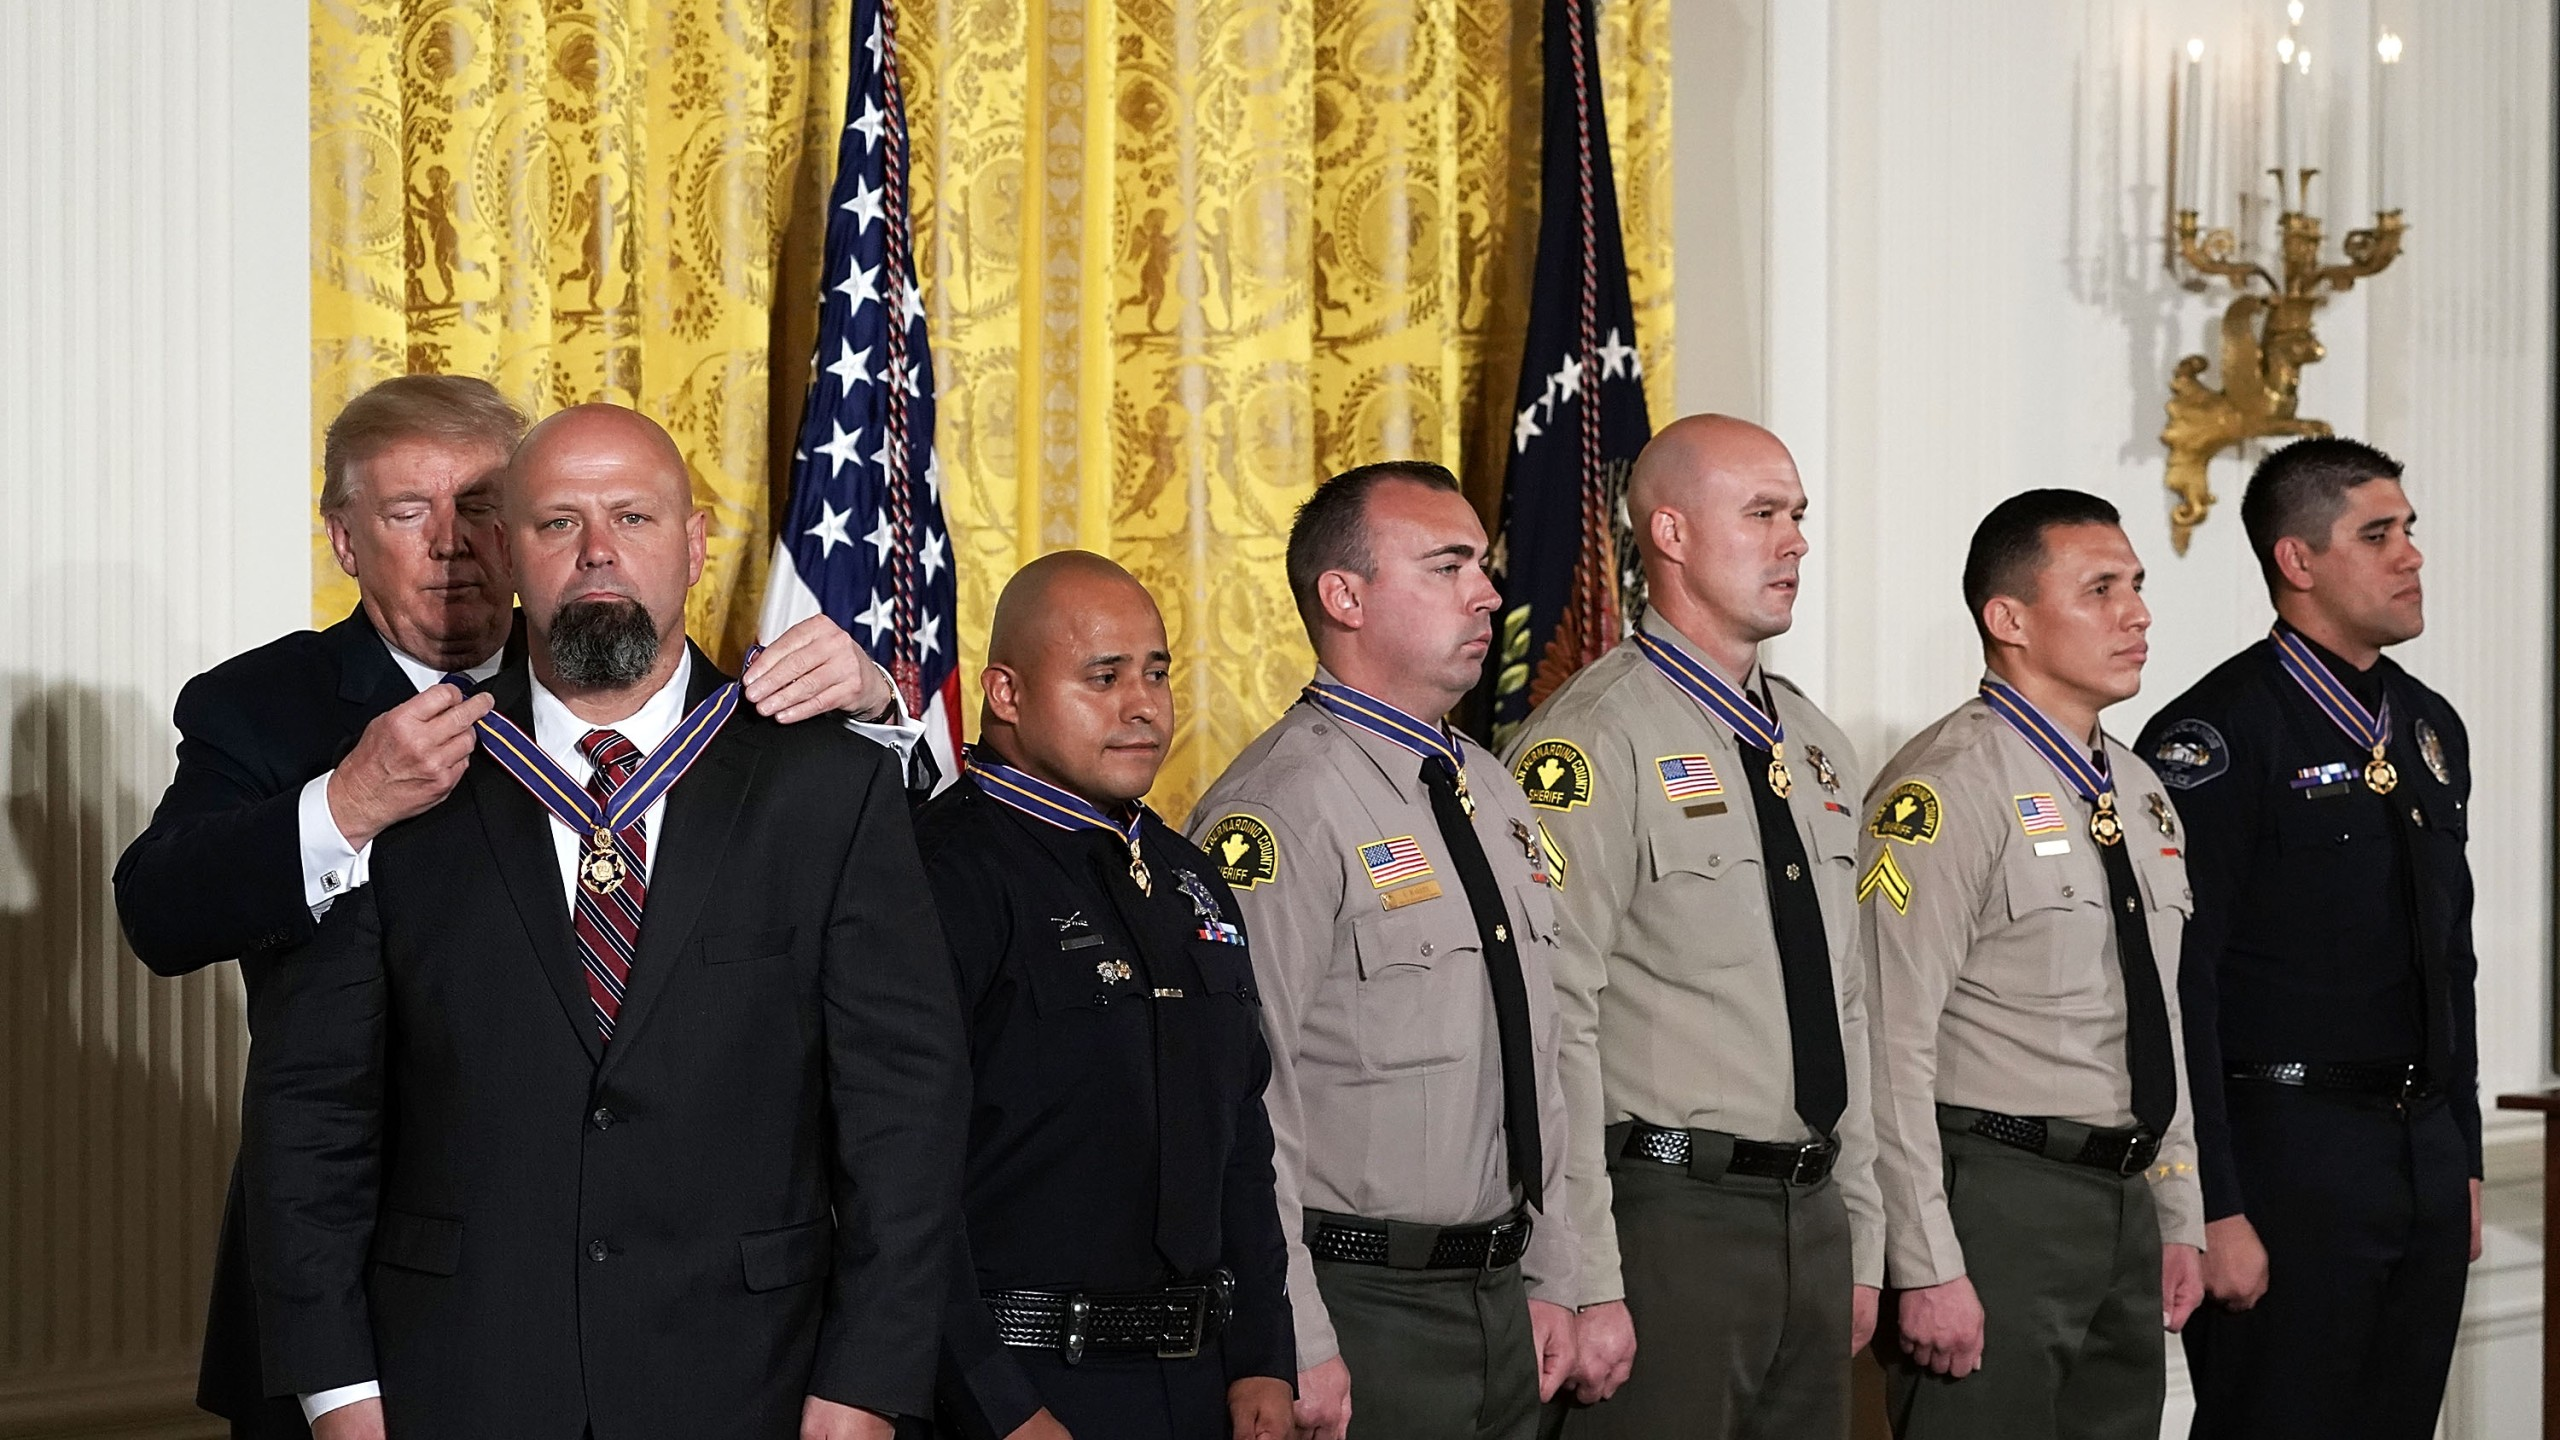 (Left to right) Donald Trump presents the Public Safety Medal of Valor to San Bernardino County District Attorney's Office Investigator Chad Johnson, San Bernardino Police Department Detective Brian Olvera, San Bernardino County Sheriff's Department Deputy Shaun Wallen, Detective Bruce Southworth, Corporal Rafael Ixco and Redlands Police Department Officer Nicholas Koahou during an award ceremony at the East Room of the White House on Feb. 20, 2018 in Washington, DC. (Credit: Alex Wong/Getty Images)